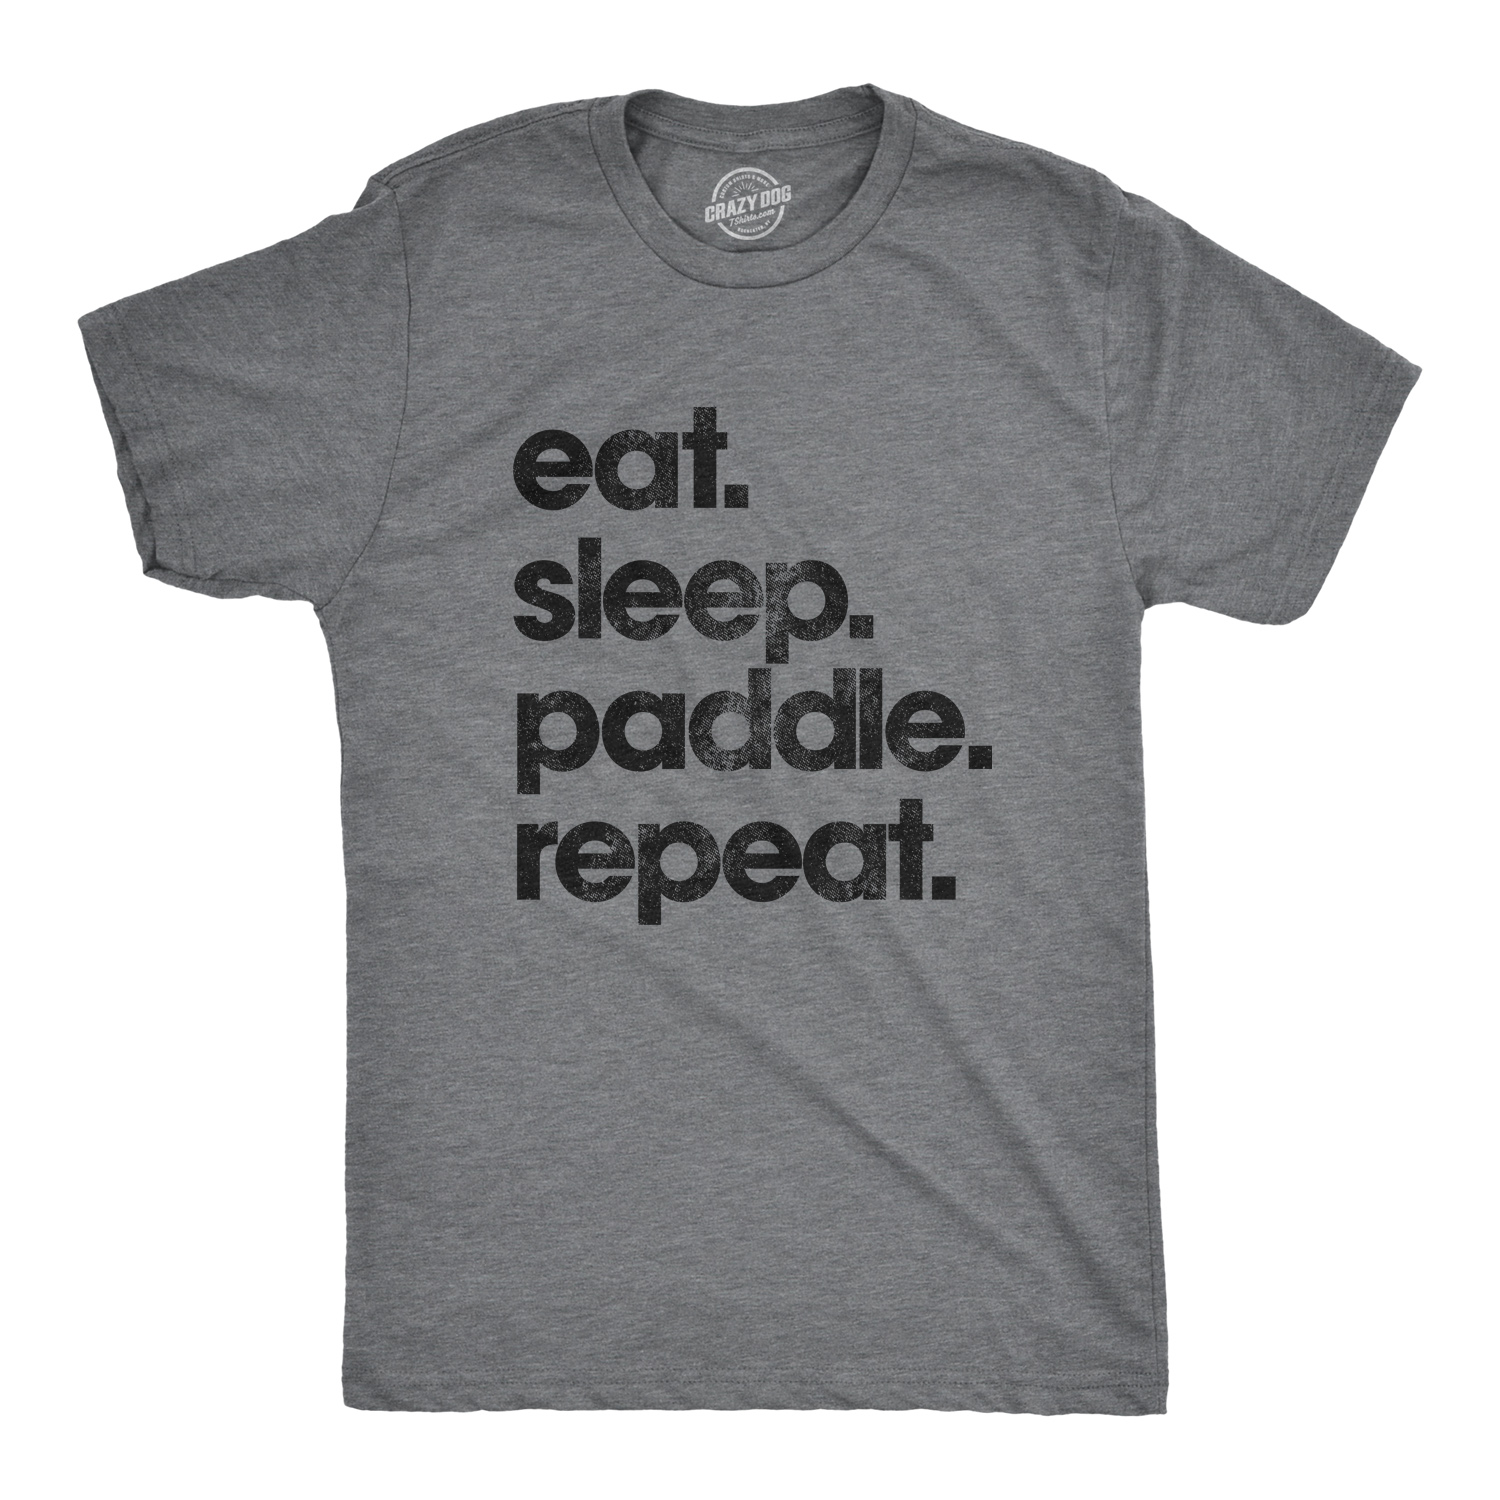 Mens Eat Sleep Paddle Repeat Tshirt SUP Stand Up Paddle Board Tee